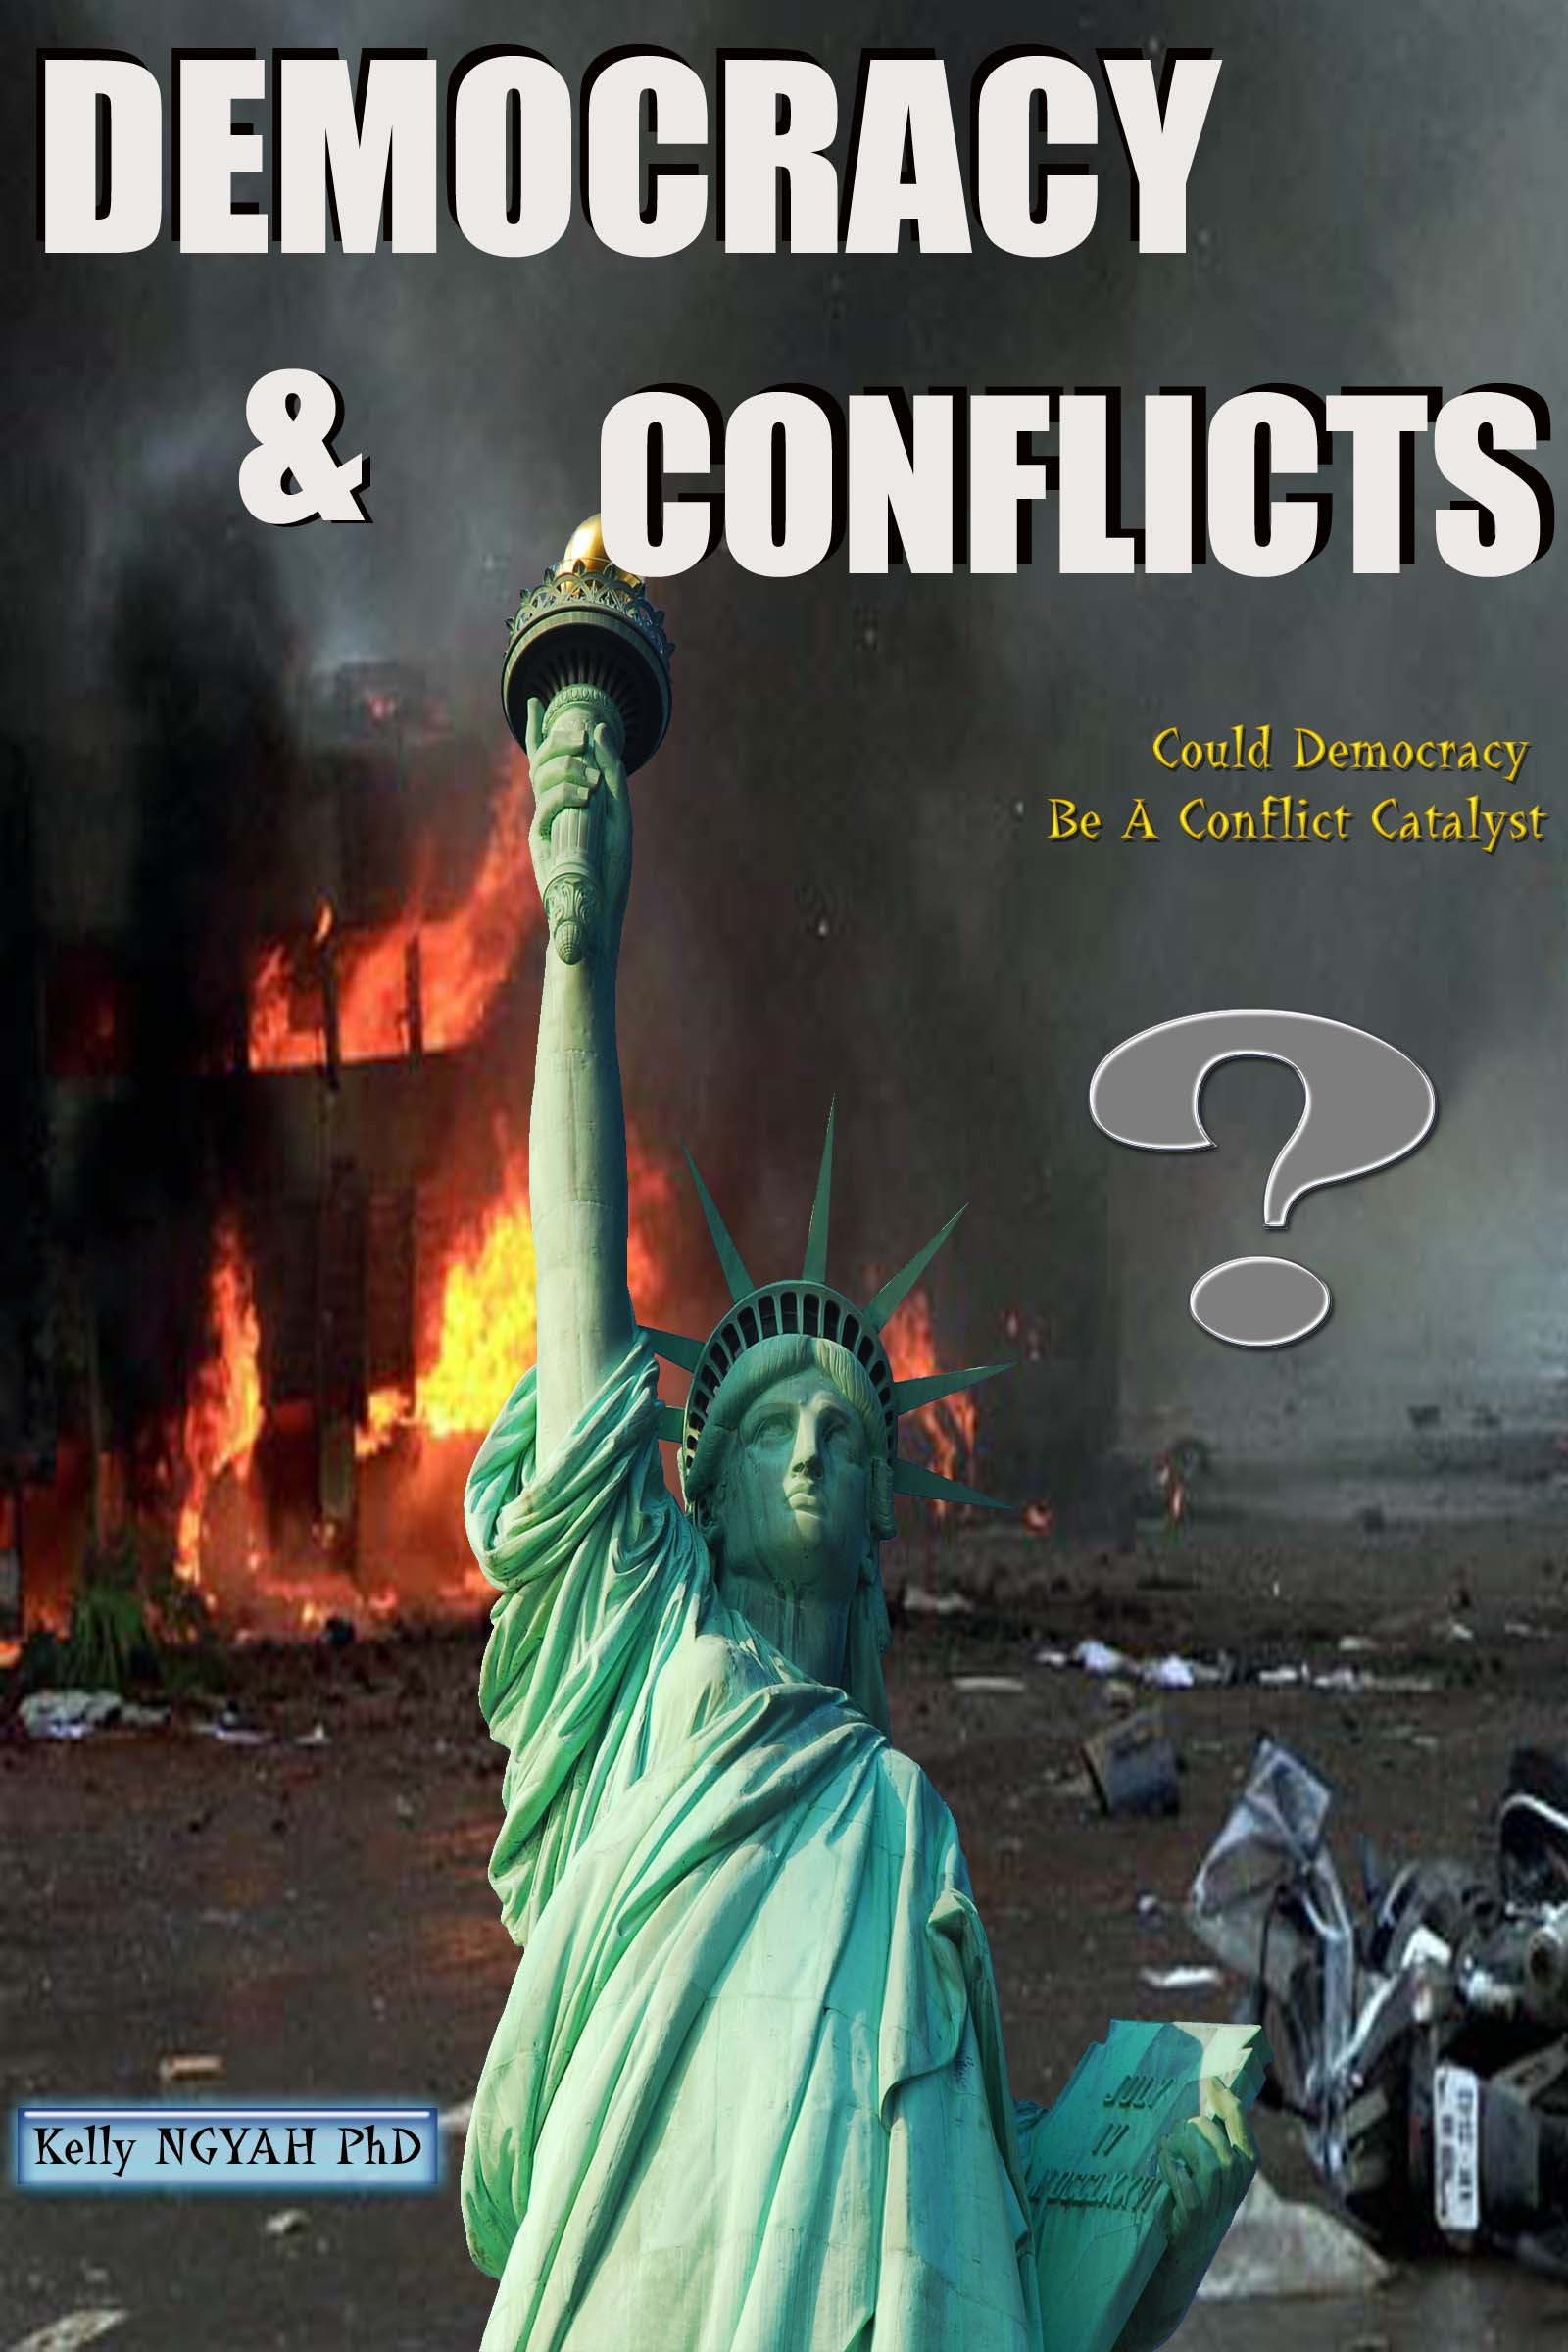 DEMOCRACY AND CONFLICTS